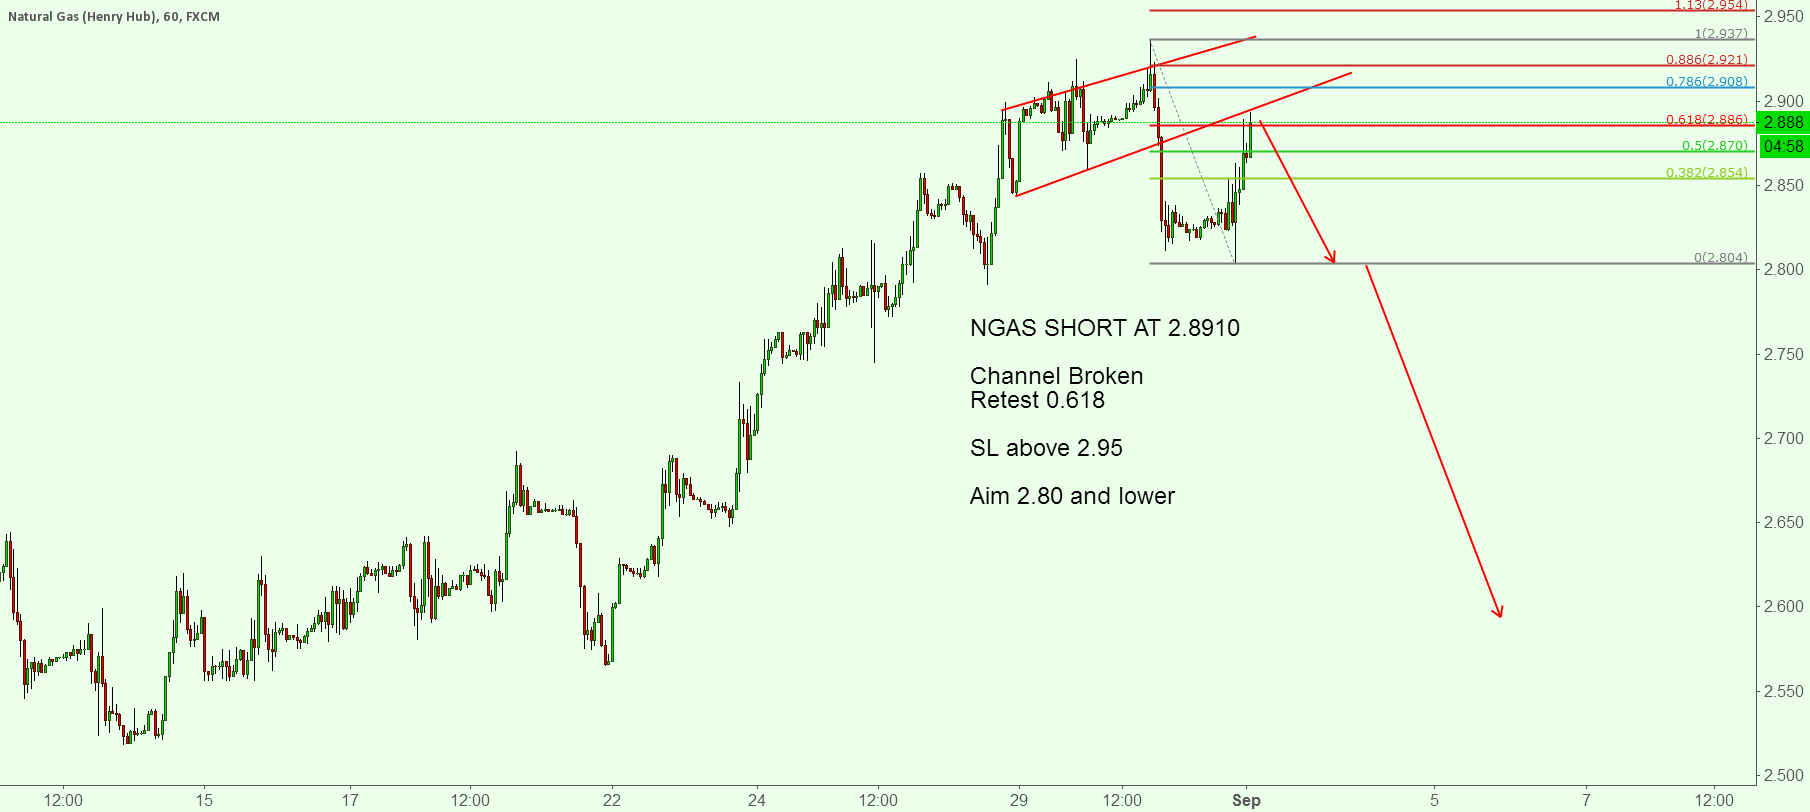 NGAS SHORT THE PULL BACK